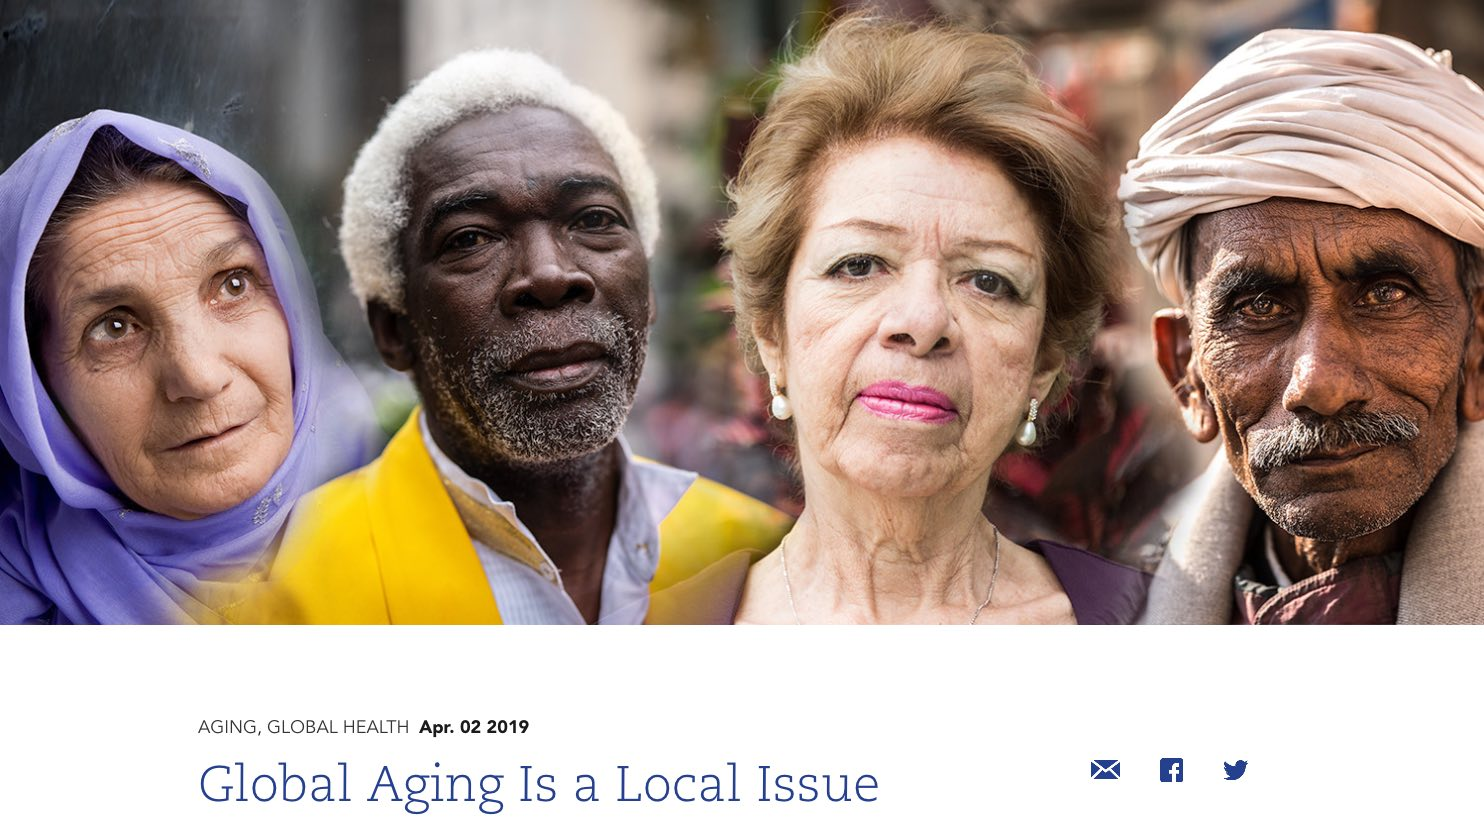 Global aging is a local issue